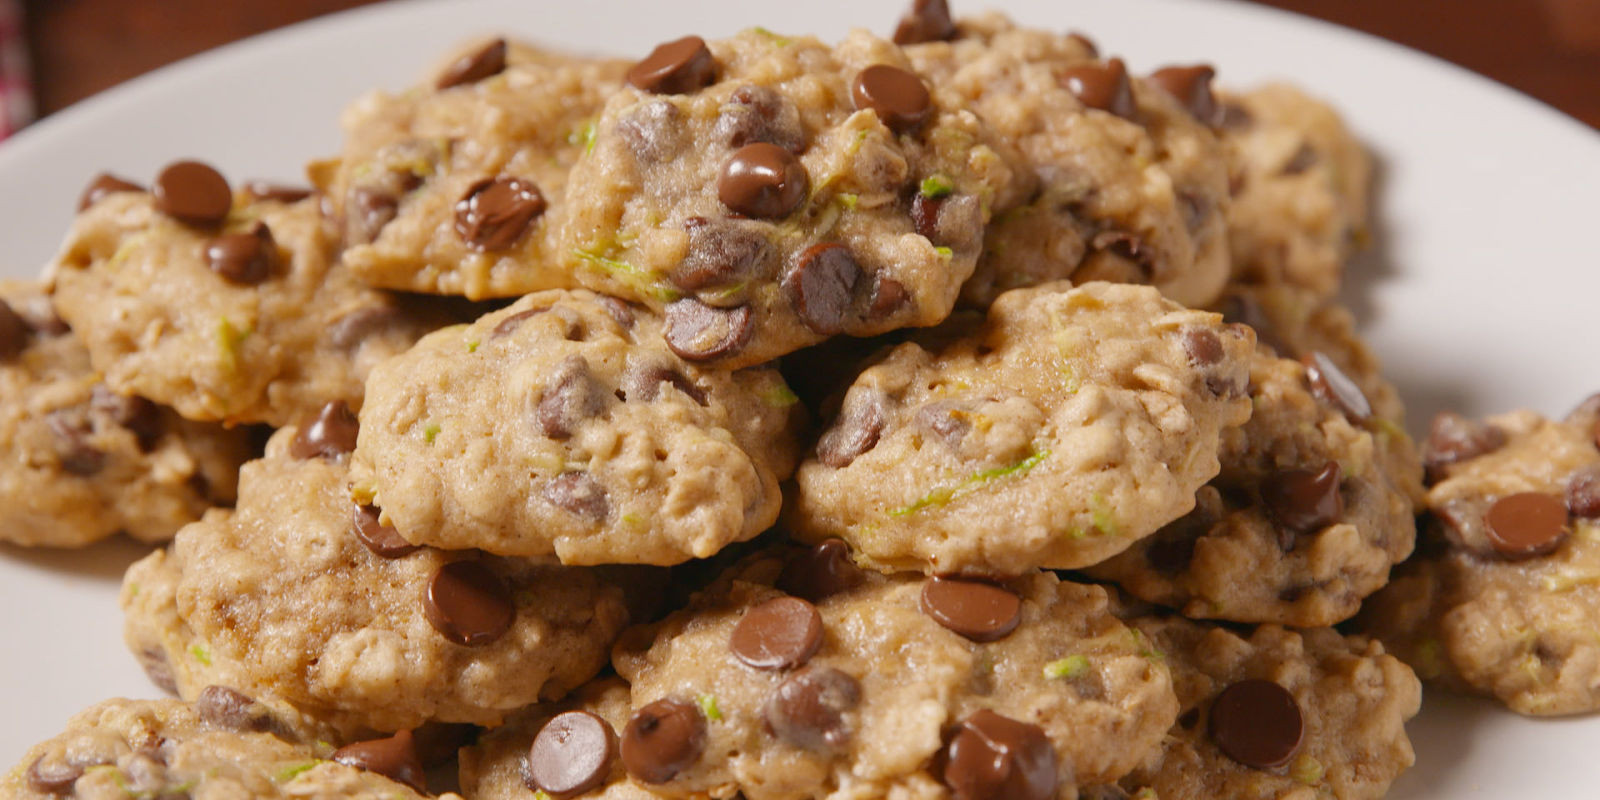 Healthy Cookies Recipe  20 Easy Healthy Cookies Recipes for Low Calorie Cookies